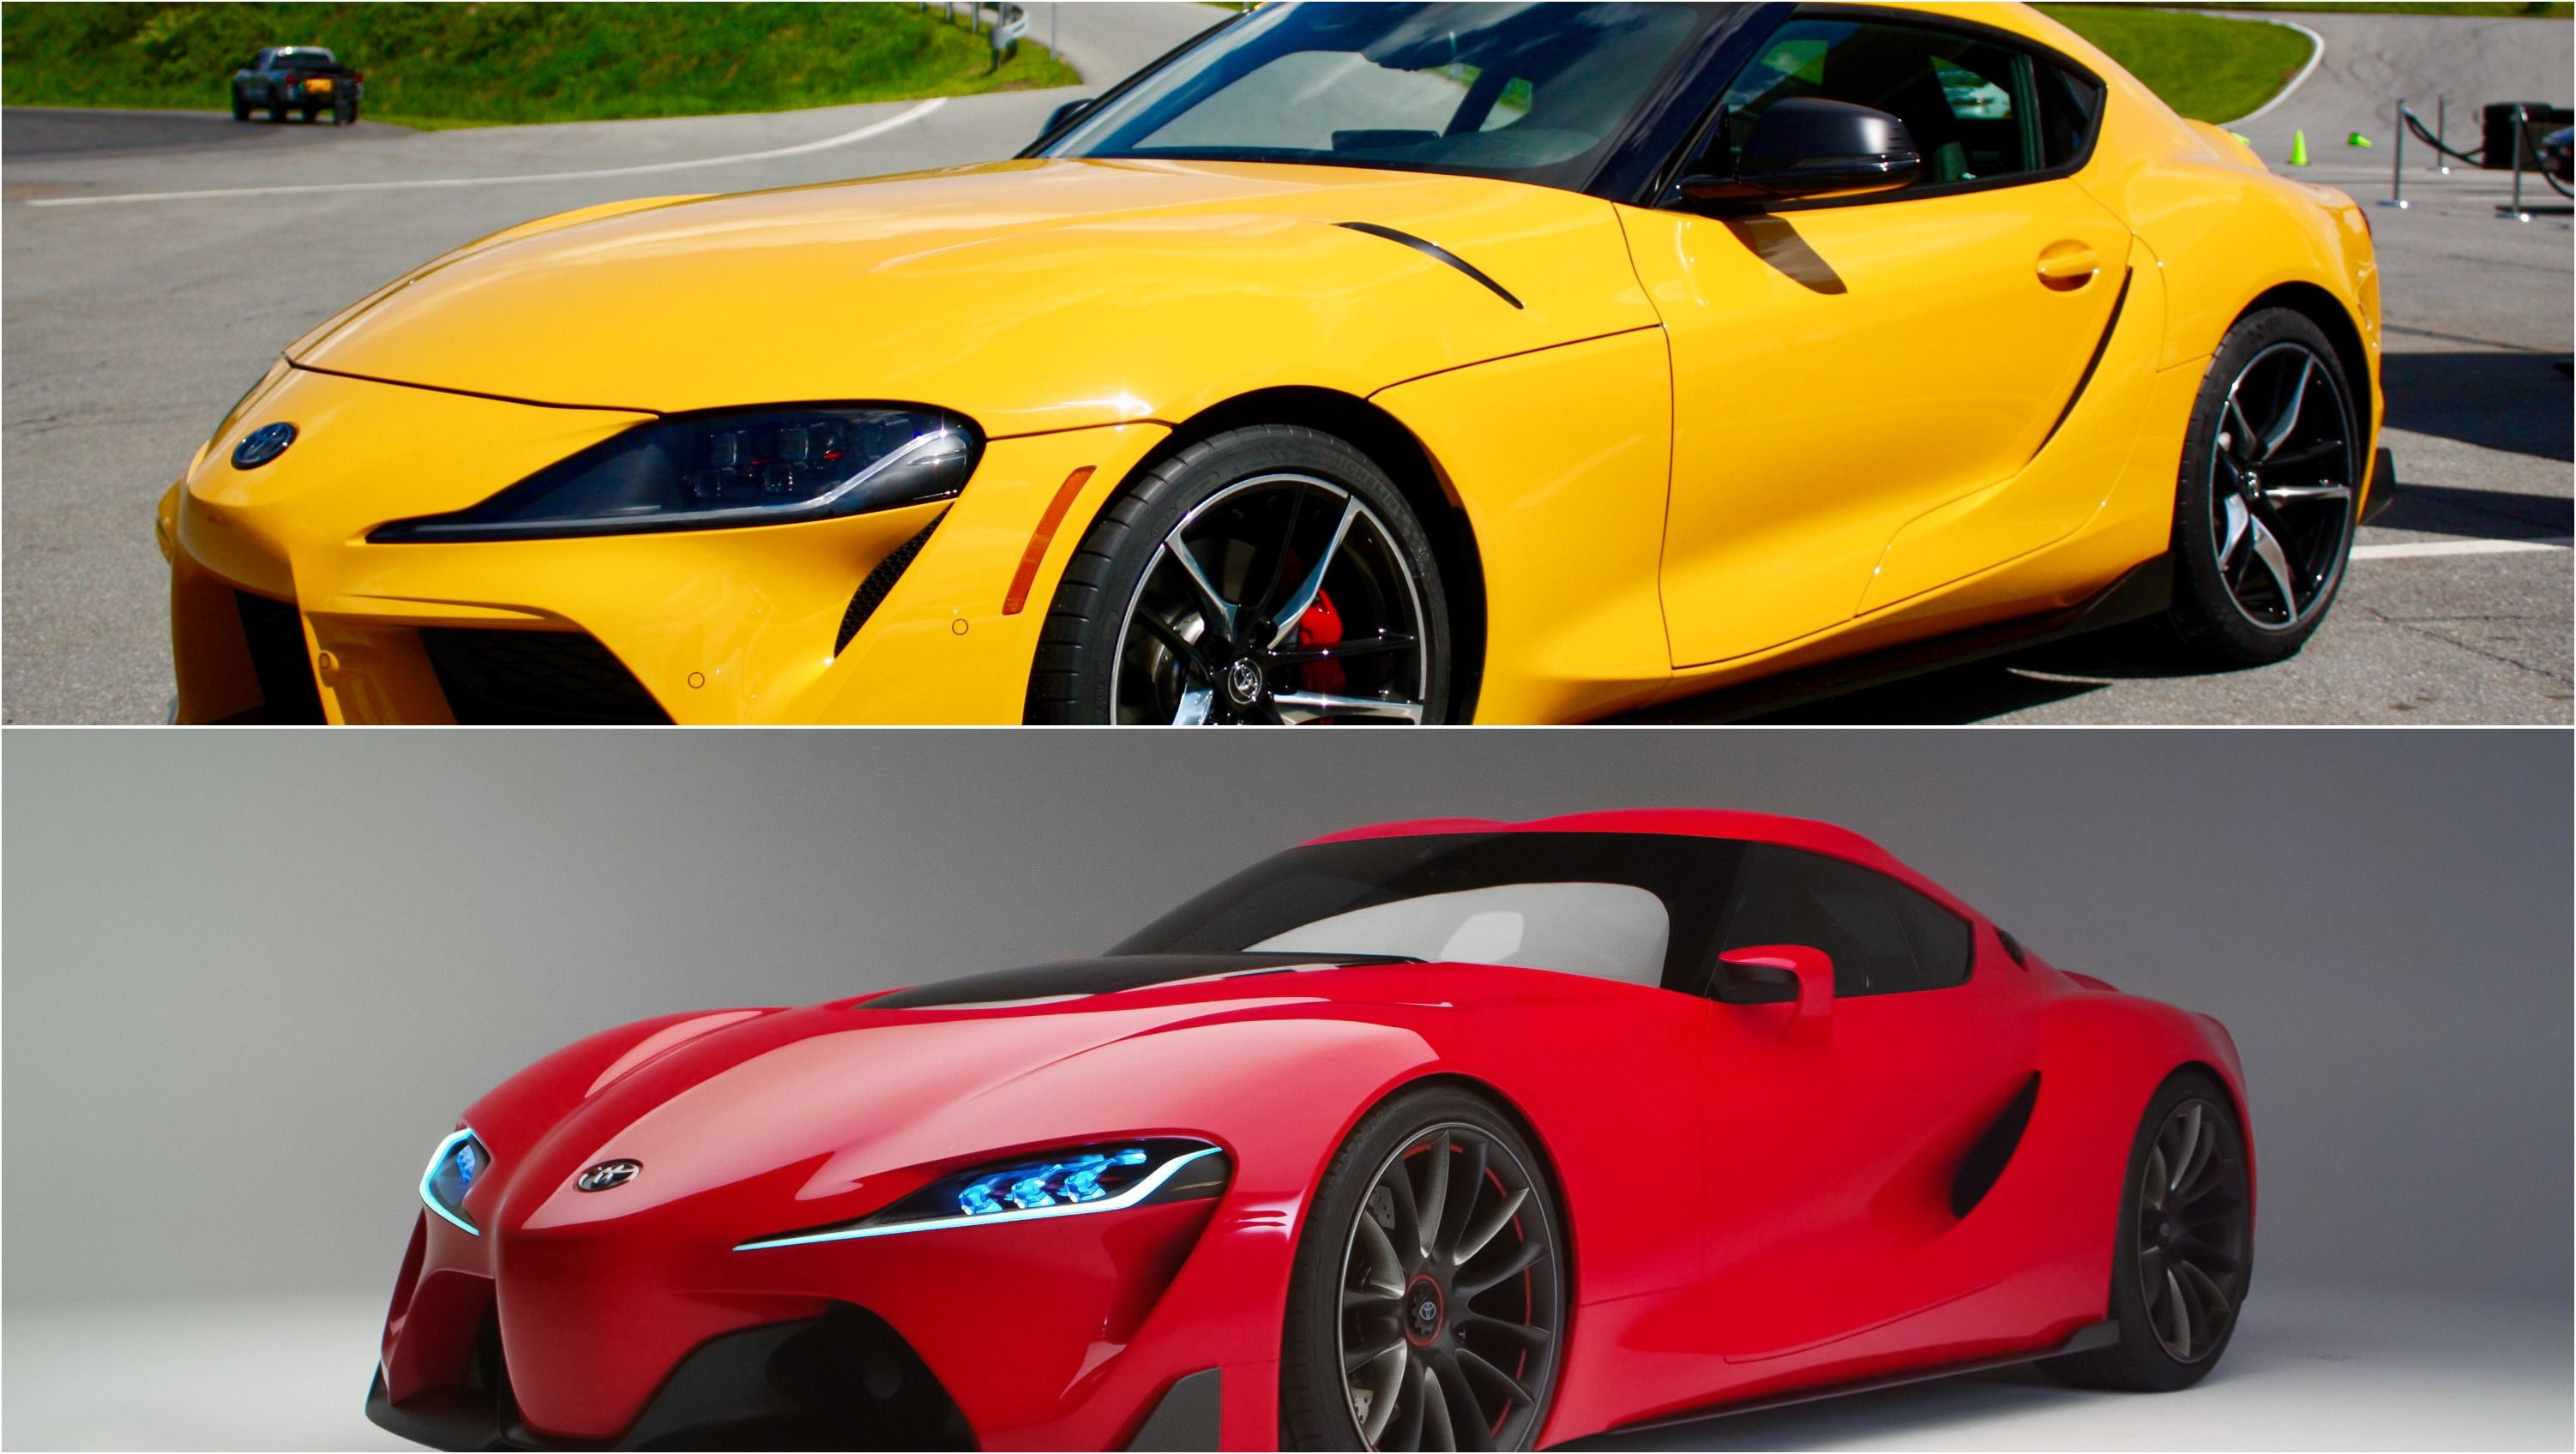 2020 Toyota Supra Vs 2014 Toyota Ft 1 Concept Top Speed Toyota Supra Toyota Toyota Car Models